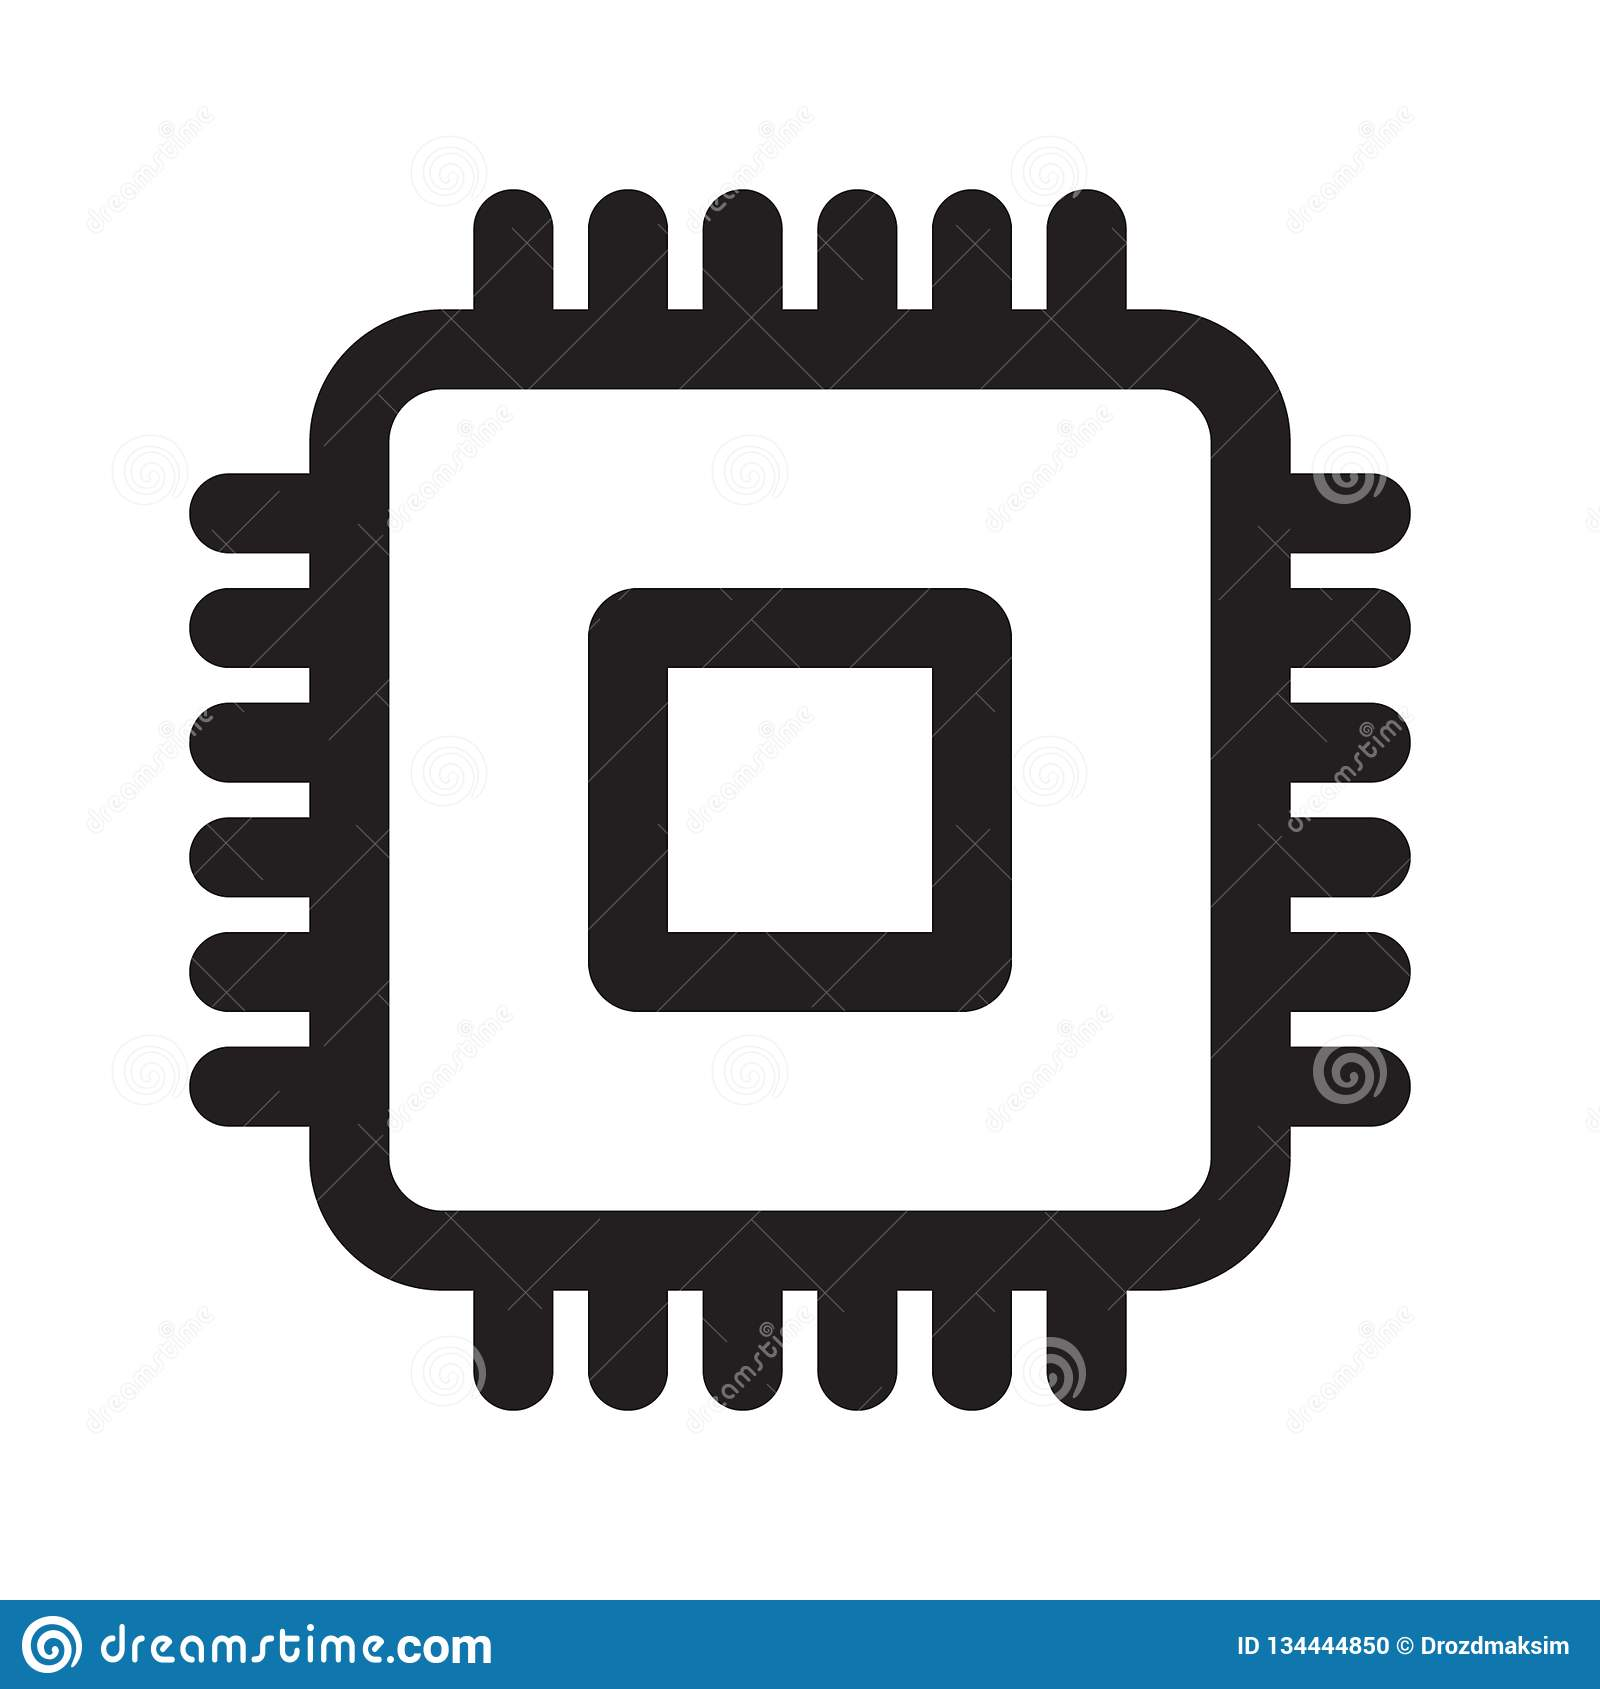 cpu vector icon stock illustration illustration of background 134444850 https www dreamstime com cpu vector icon illustration isolated background image134444850